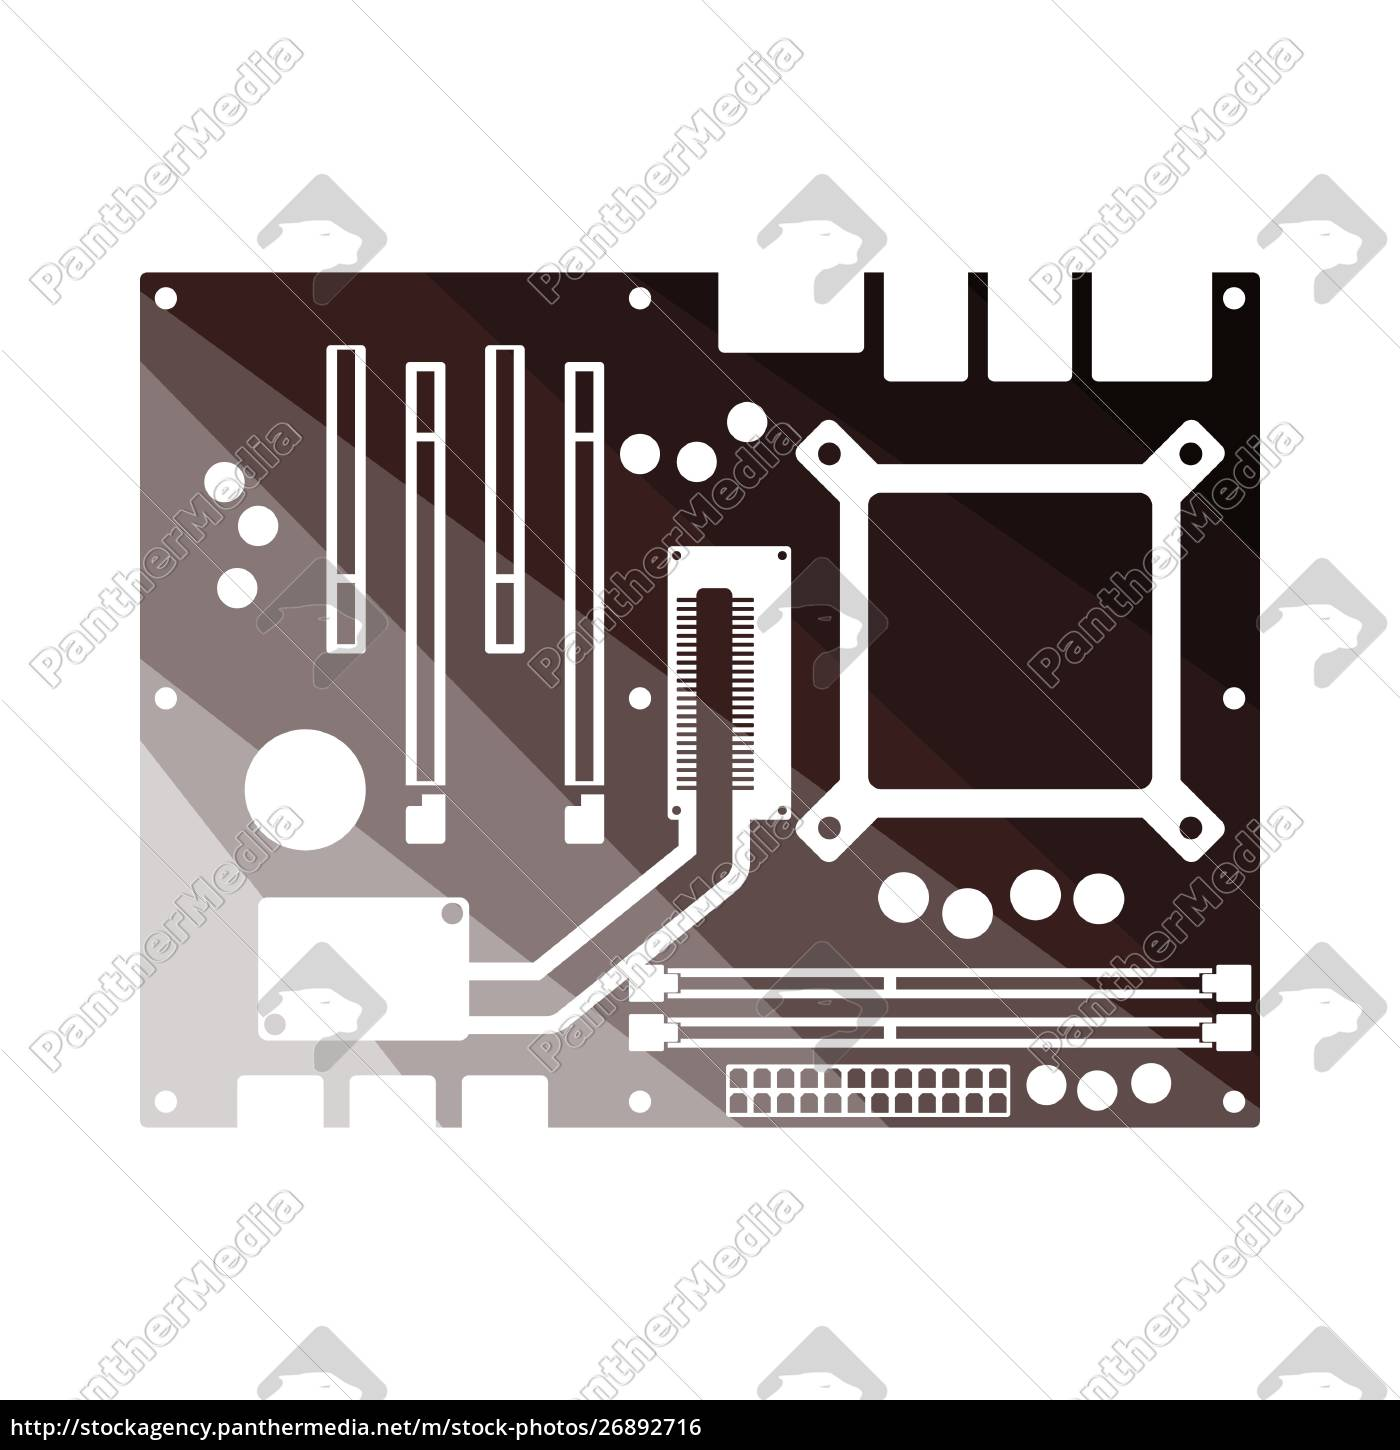 motherboard, icon - 26892716